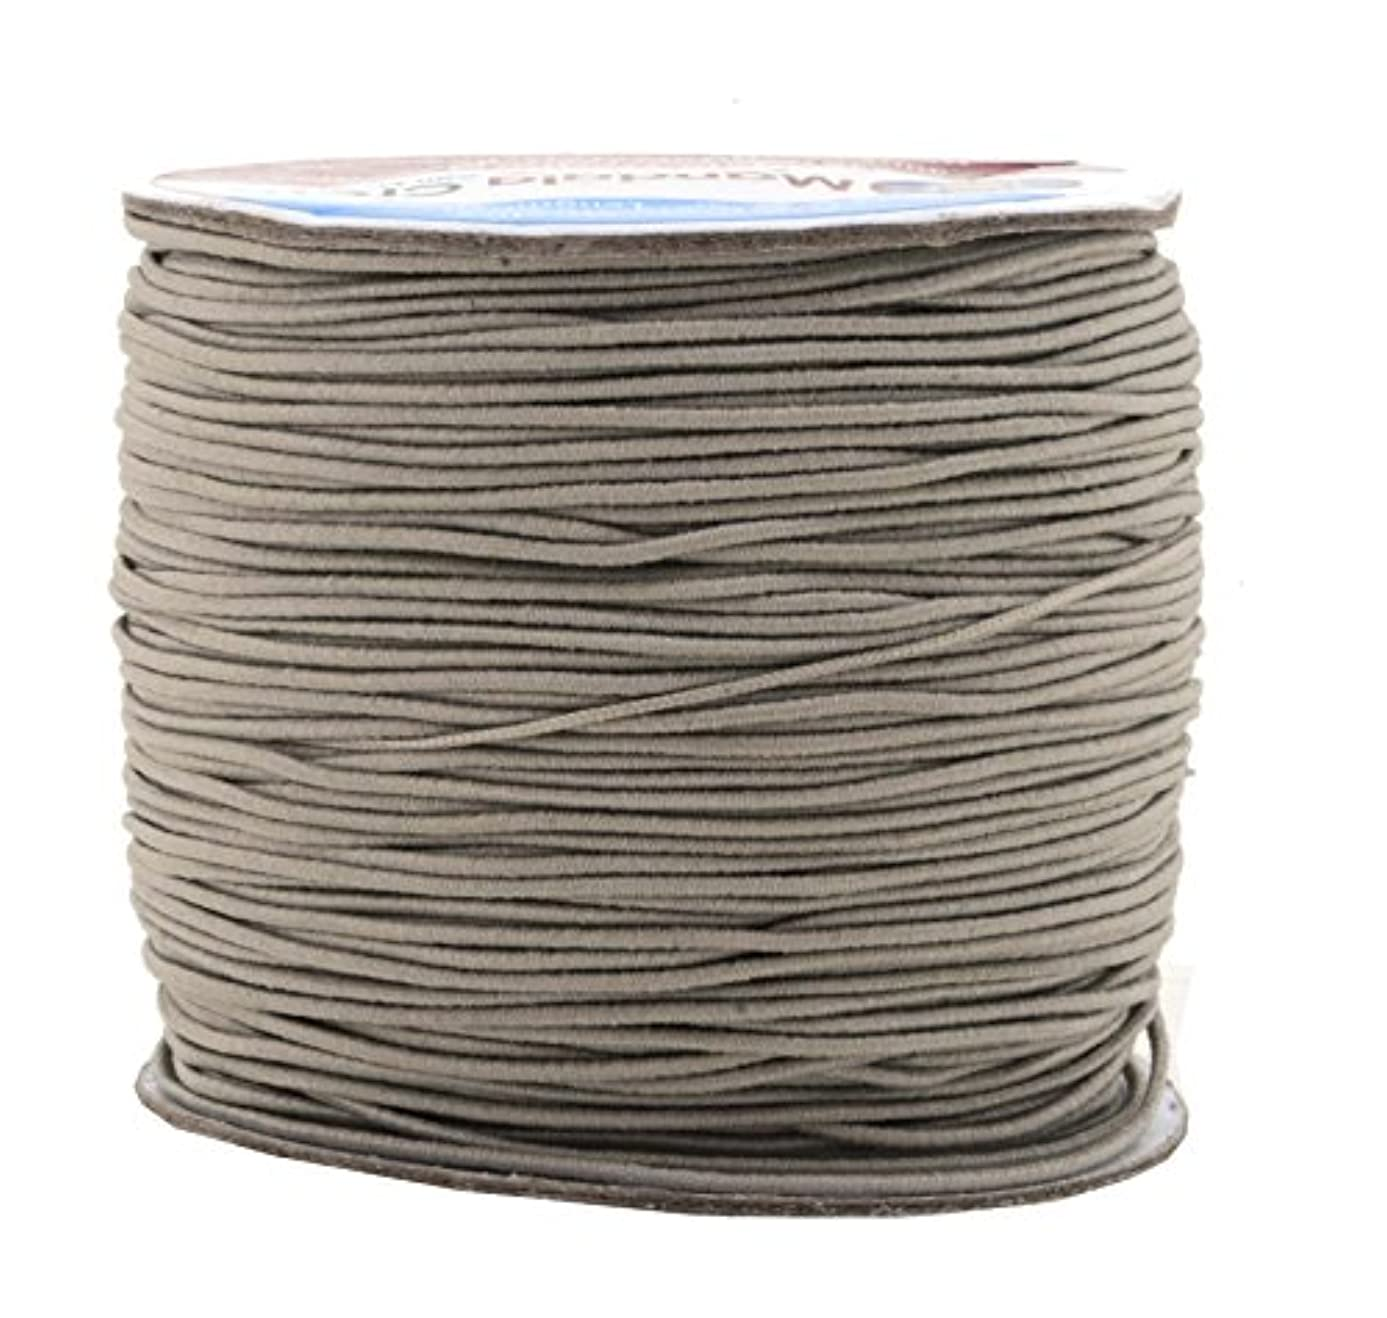 Mandala Crafts 1mm 109 Yards Round Rubber Fabric Covered Elastic Cord, Stretch String for Beading, Jewelry Making, Masks, DIY Crafting (Gray)